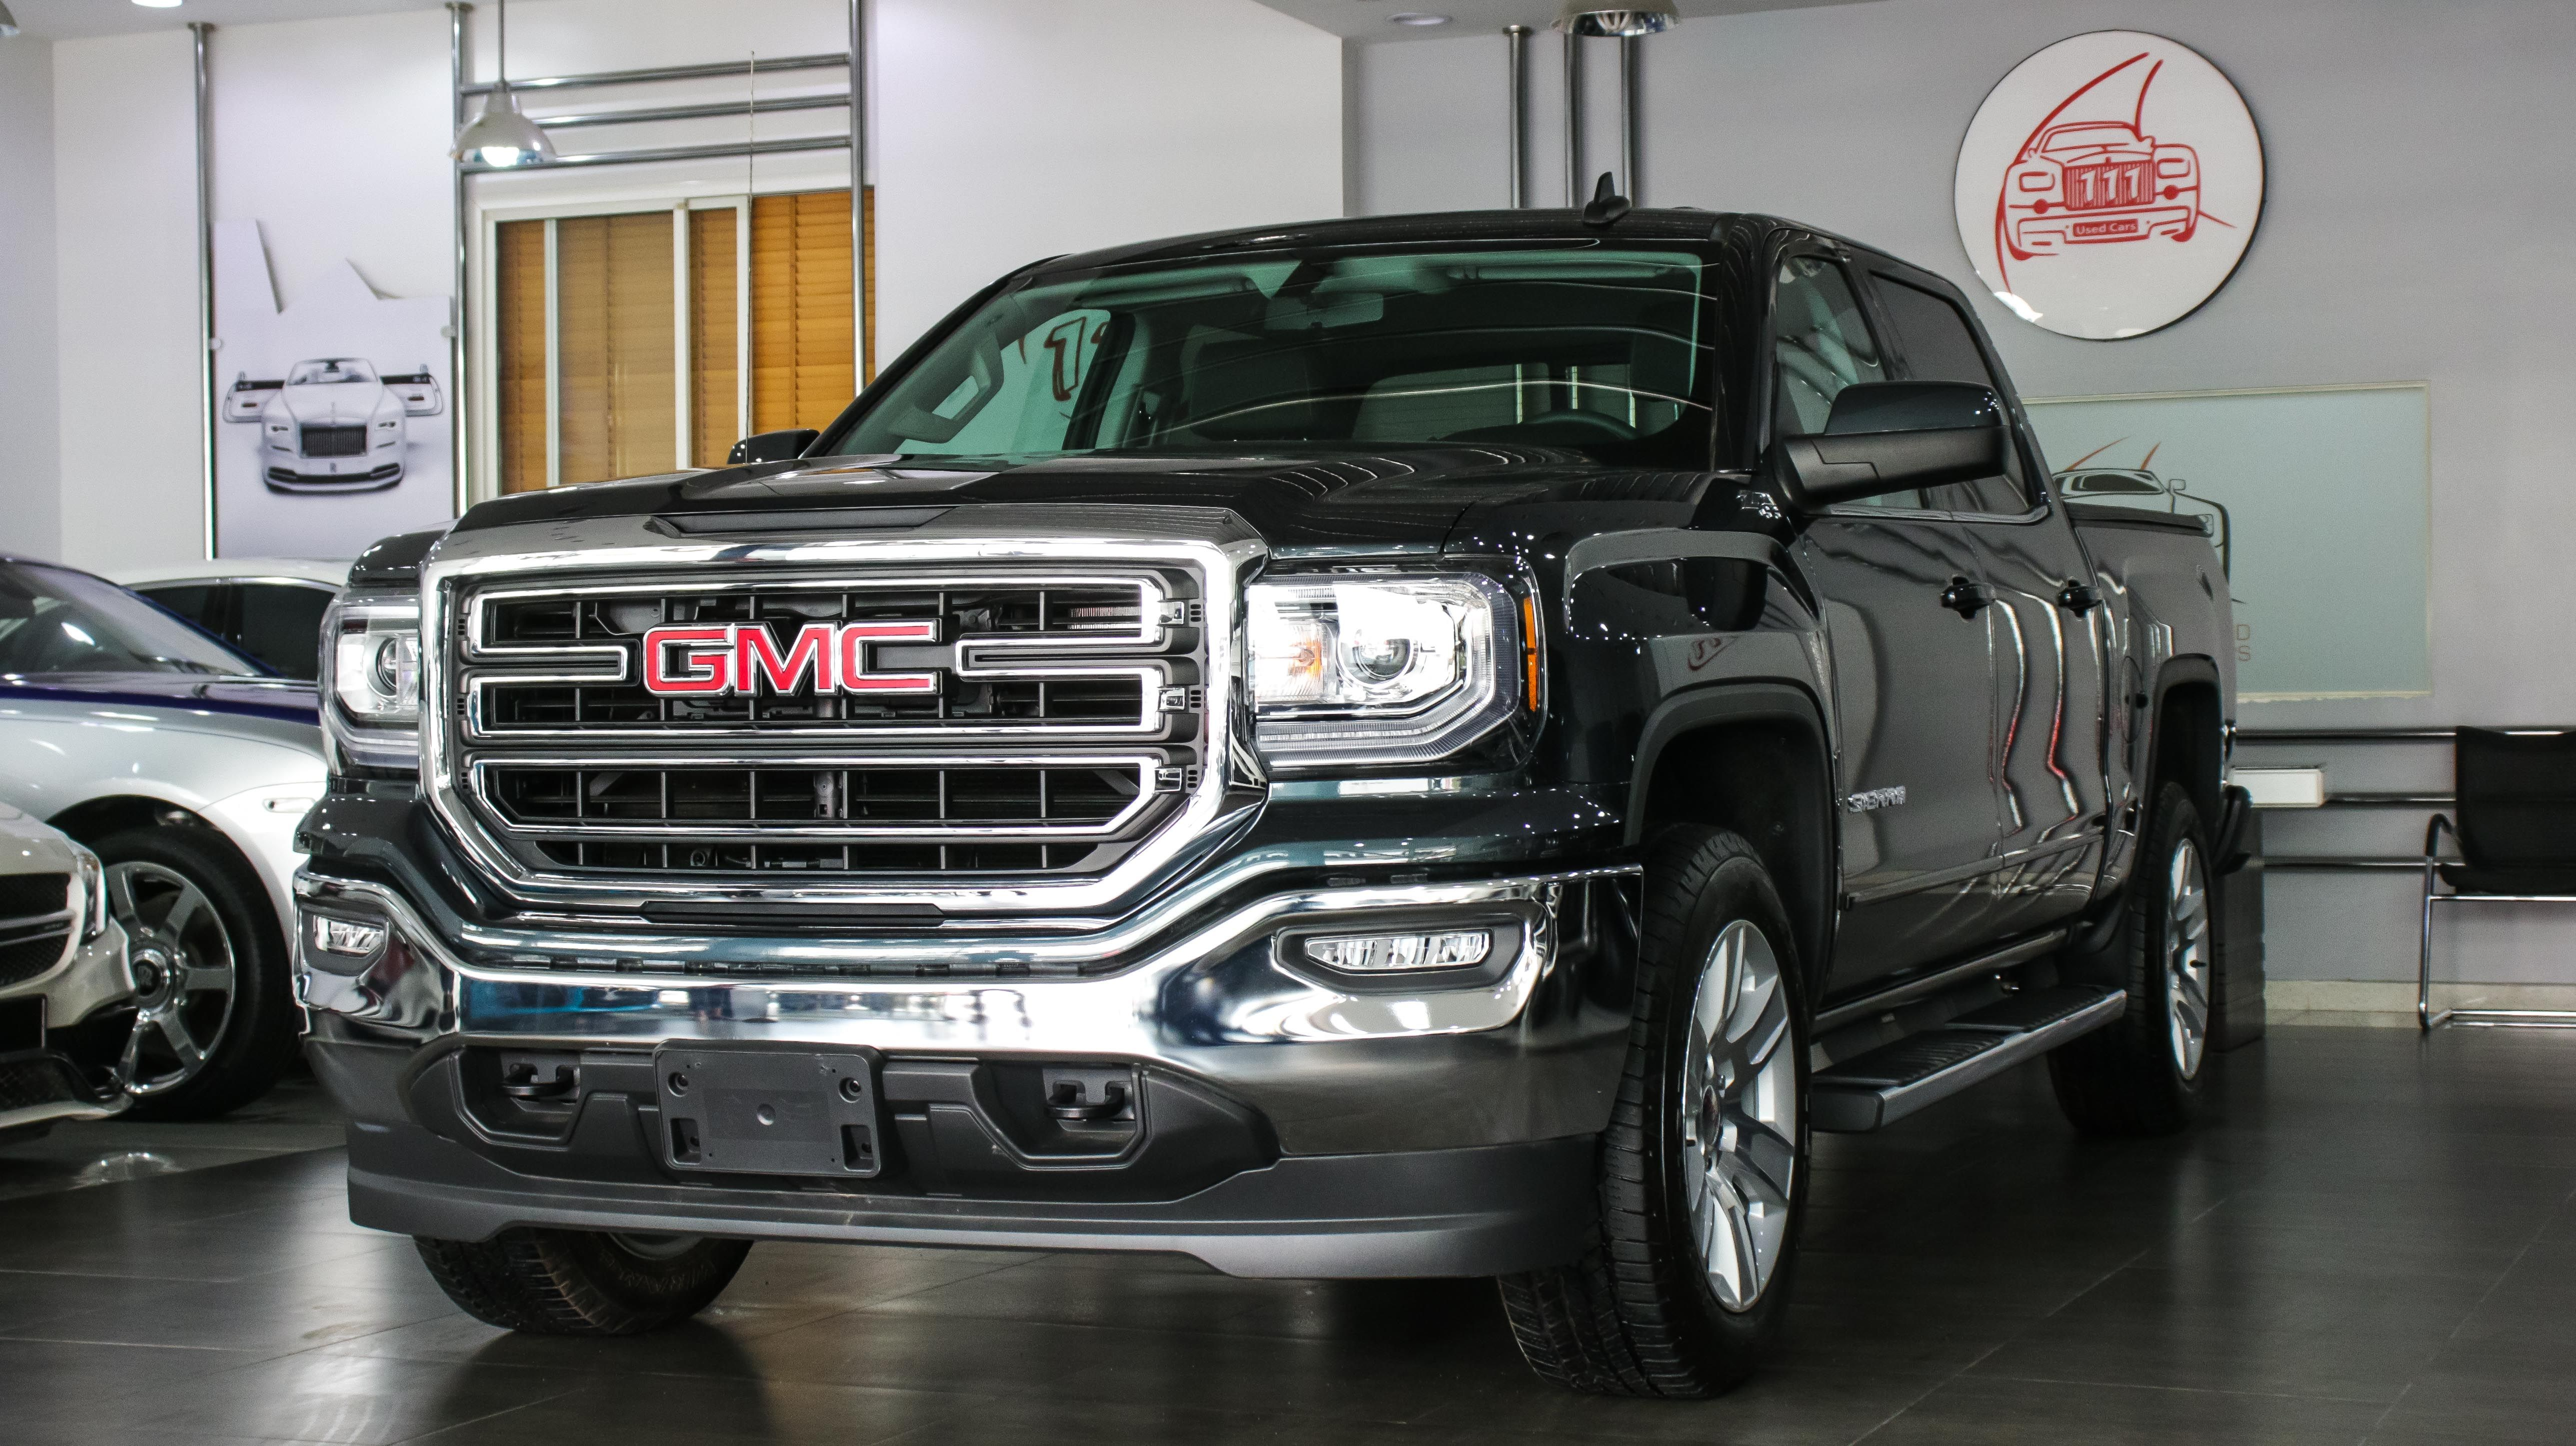 Model Gmc Sierra 1500 Sle Year 2018 Km 0 Price Uae Dirham